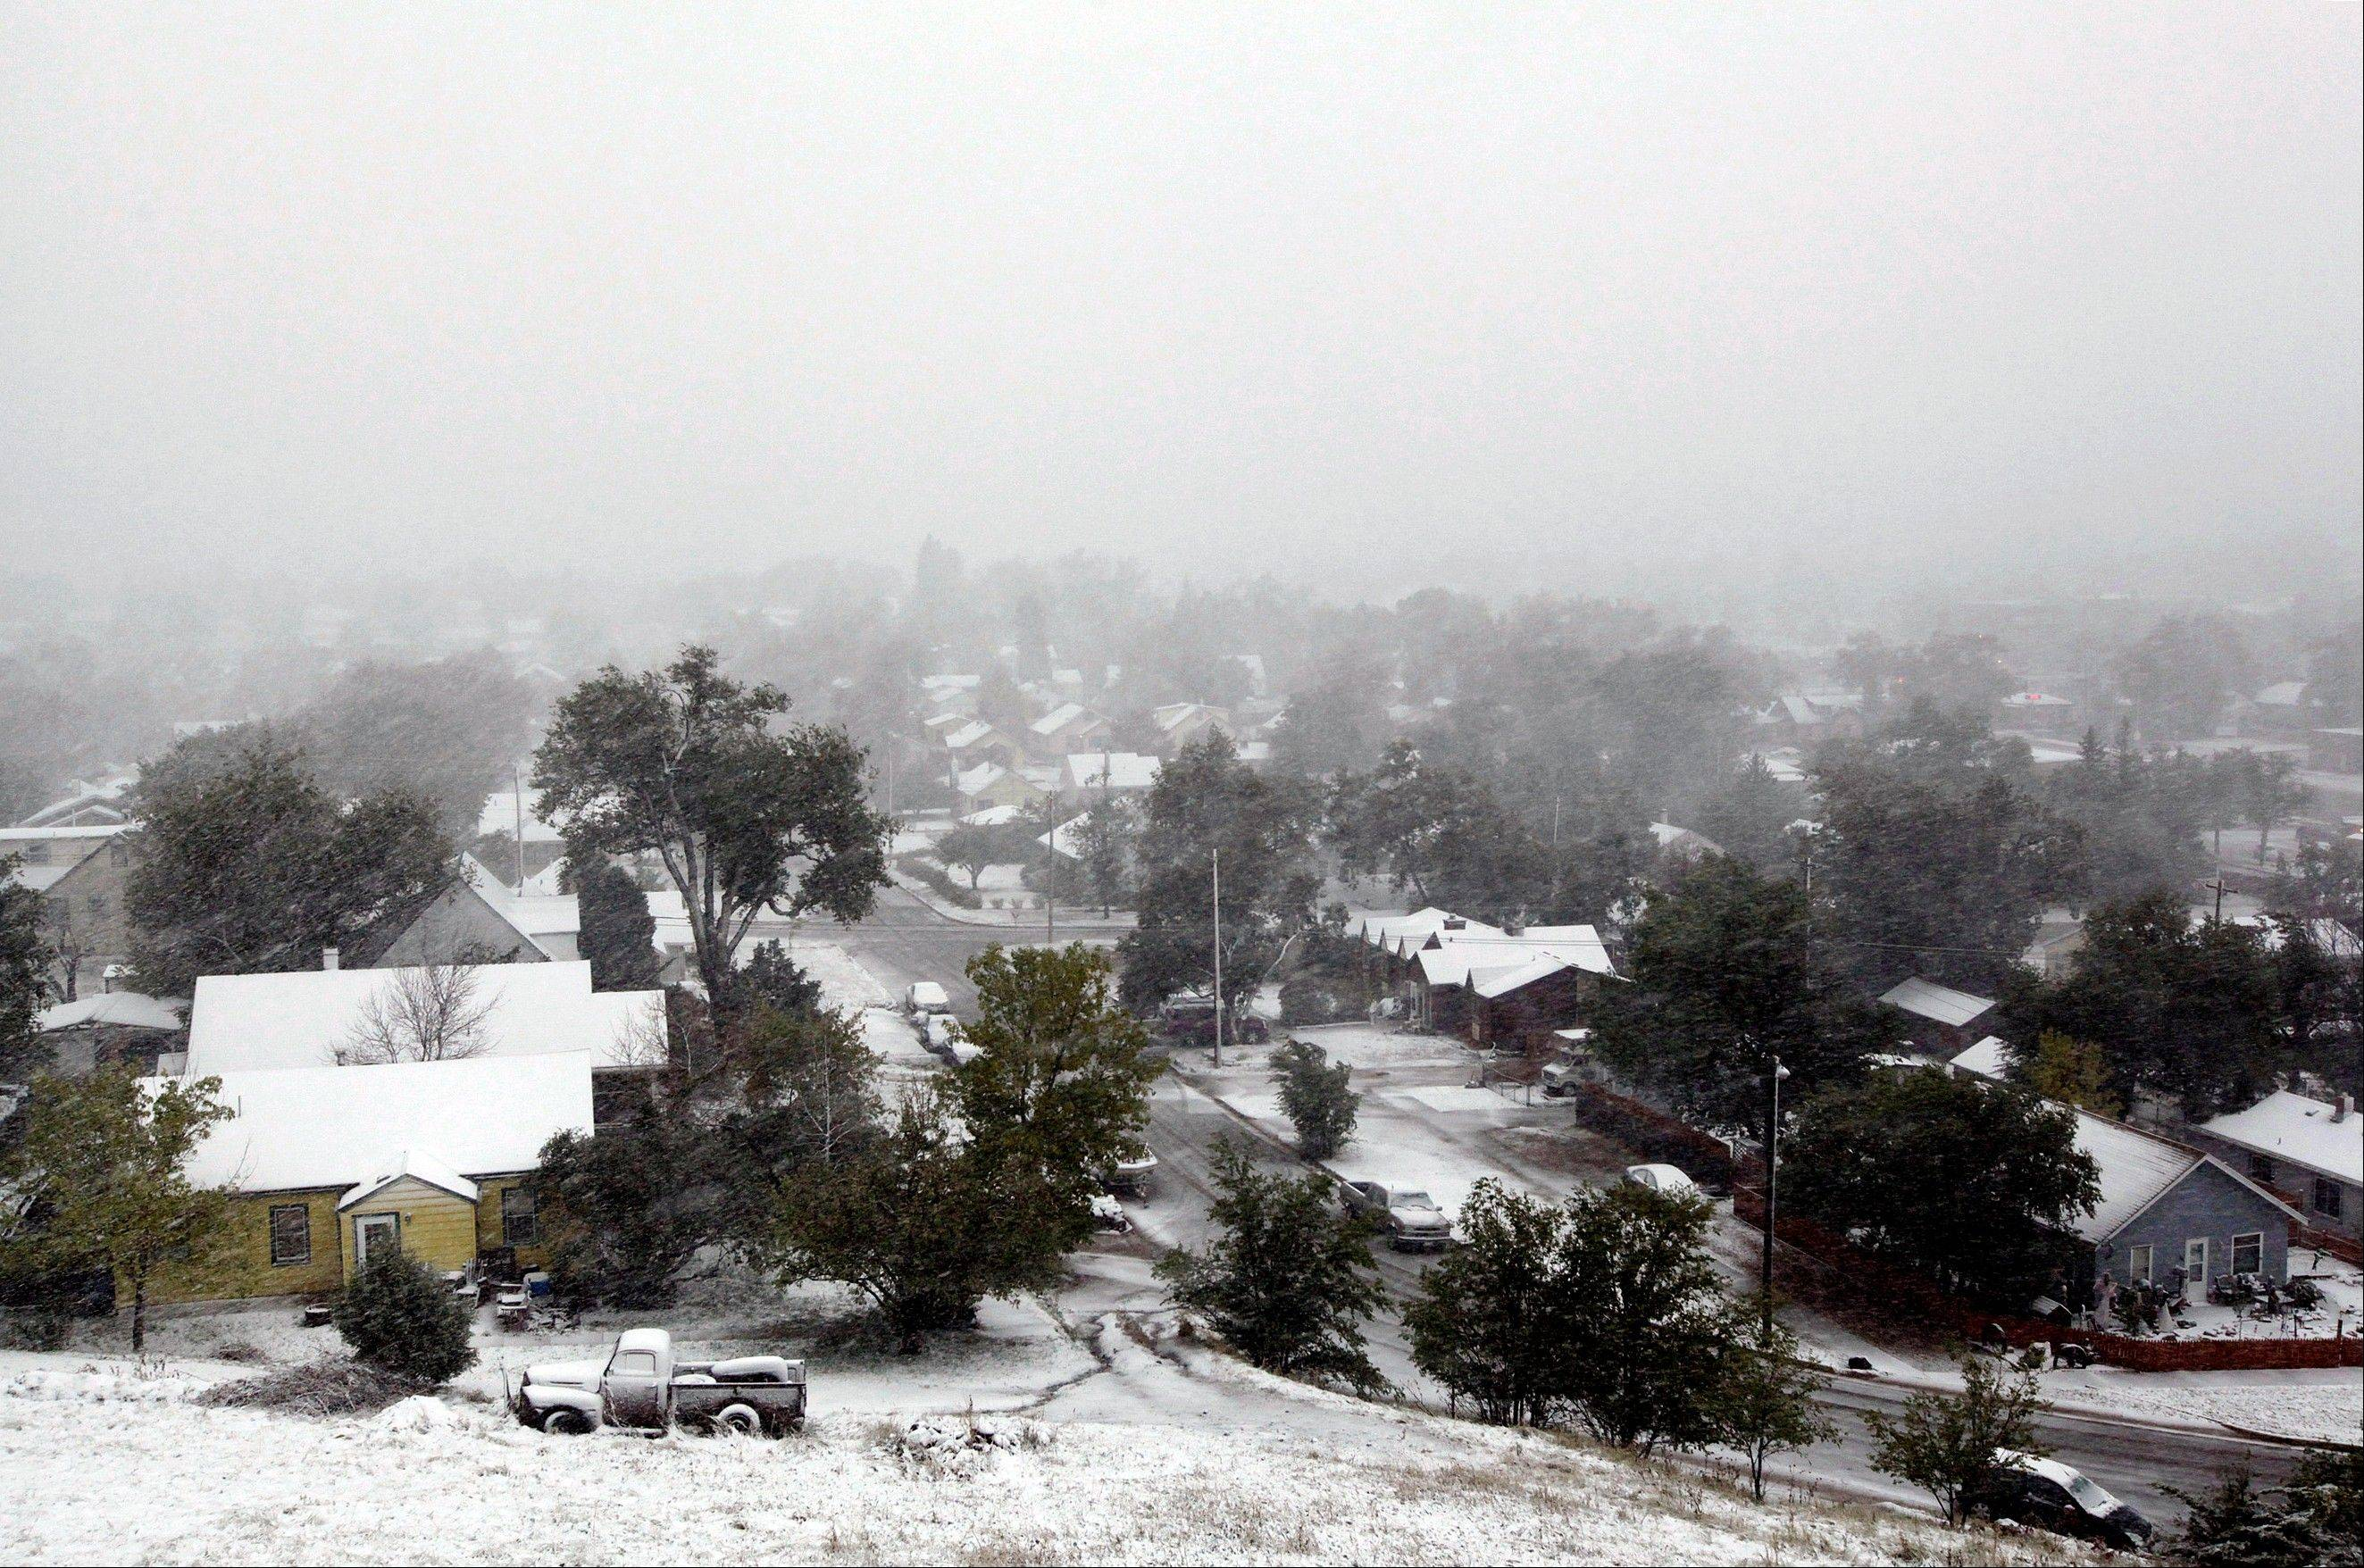 Snow falls over a residential neighborhood during a storm Friday, Oct. 4, 2013, in Rapid City, S.D. Blizzards rolled into parts of Wyoming and South Dakota on Friday, bringing the states to an unseasonably early wintery standstill by closing highways and schools.